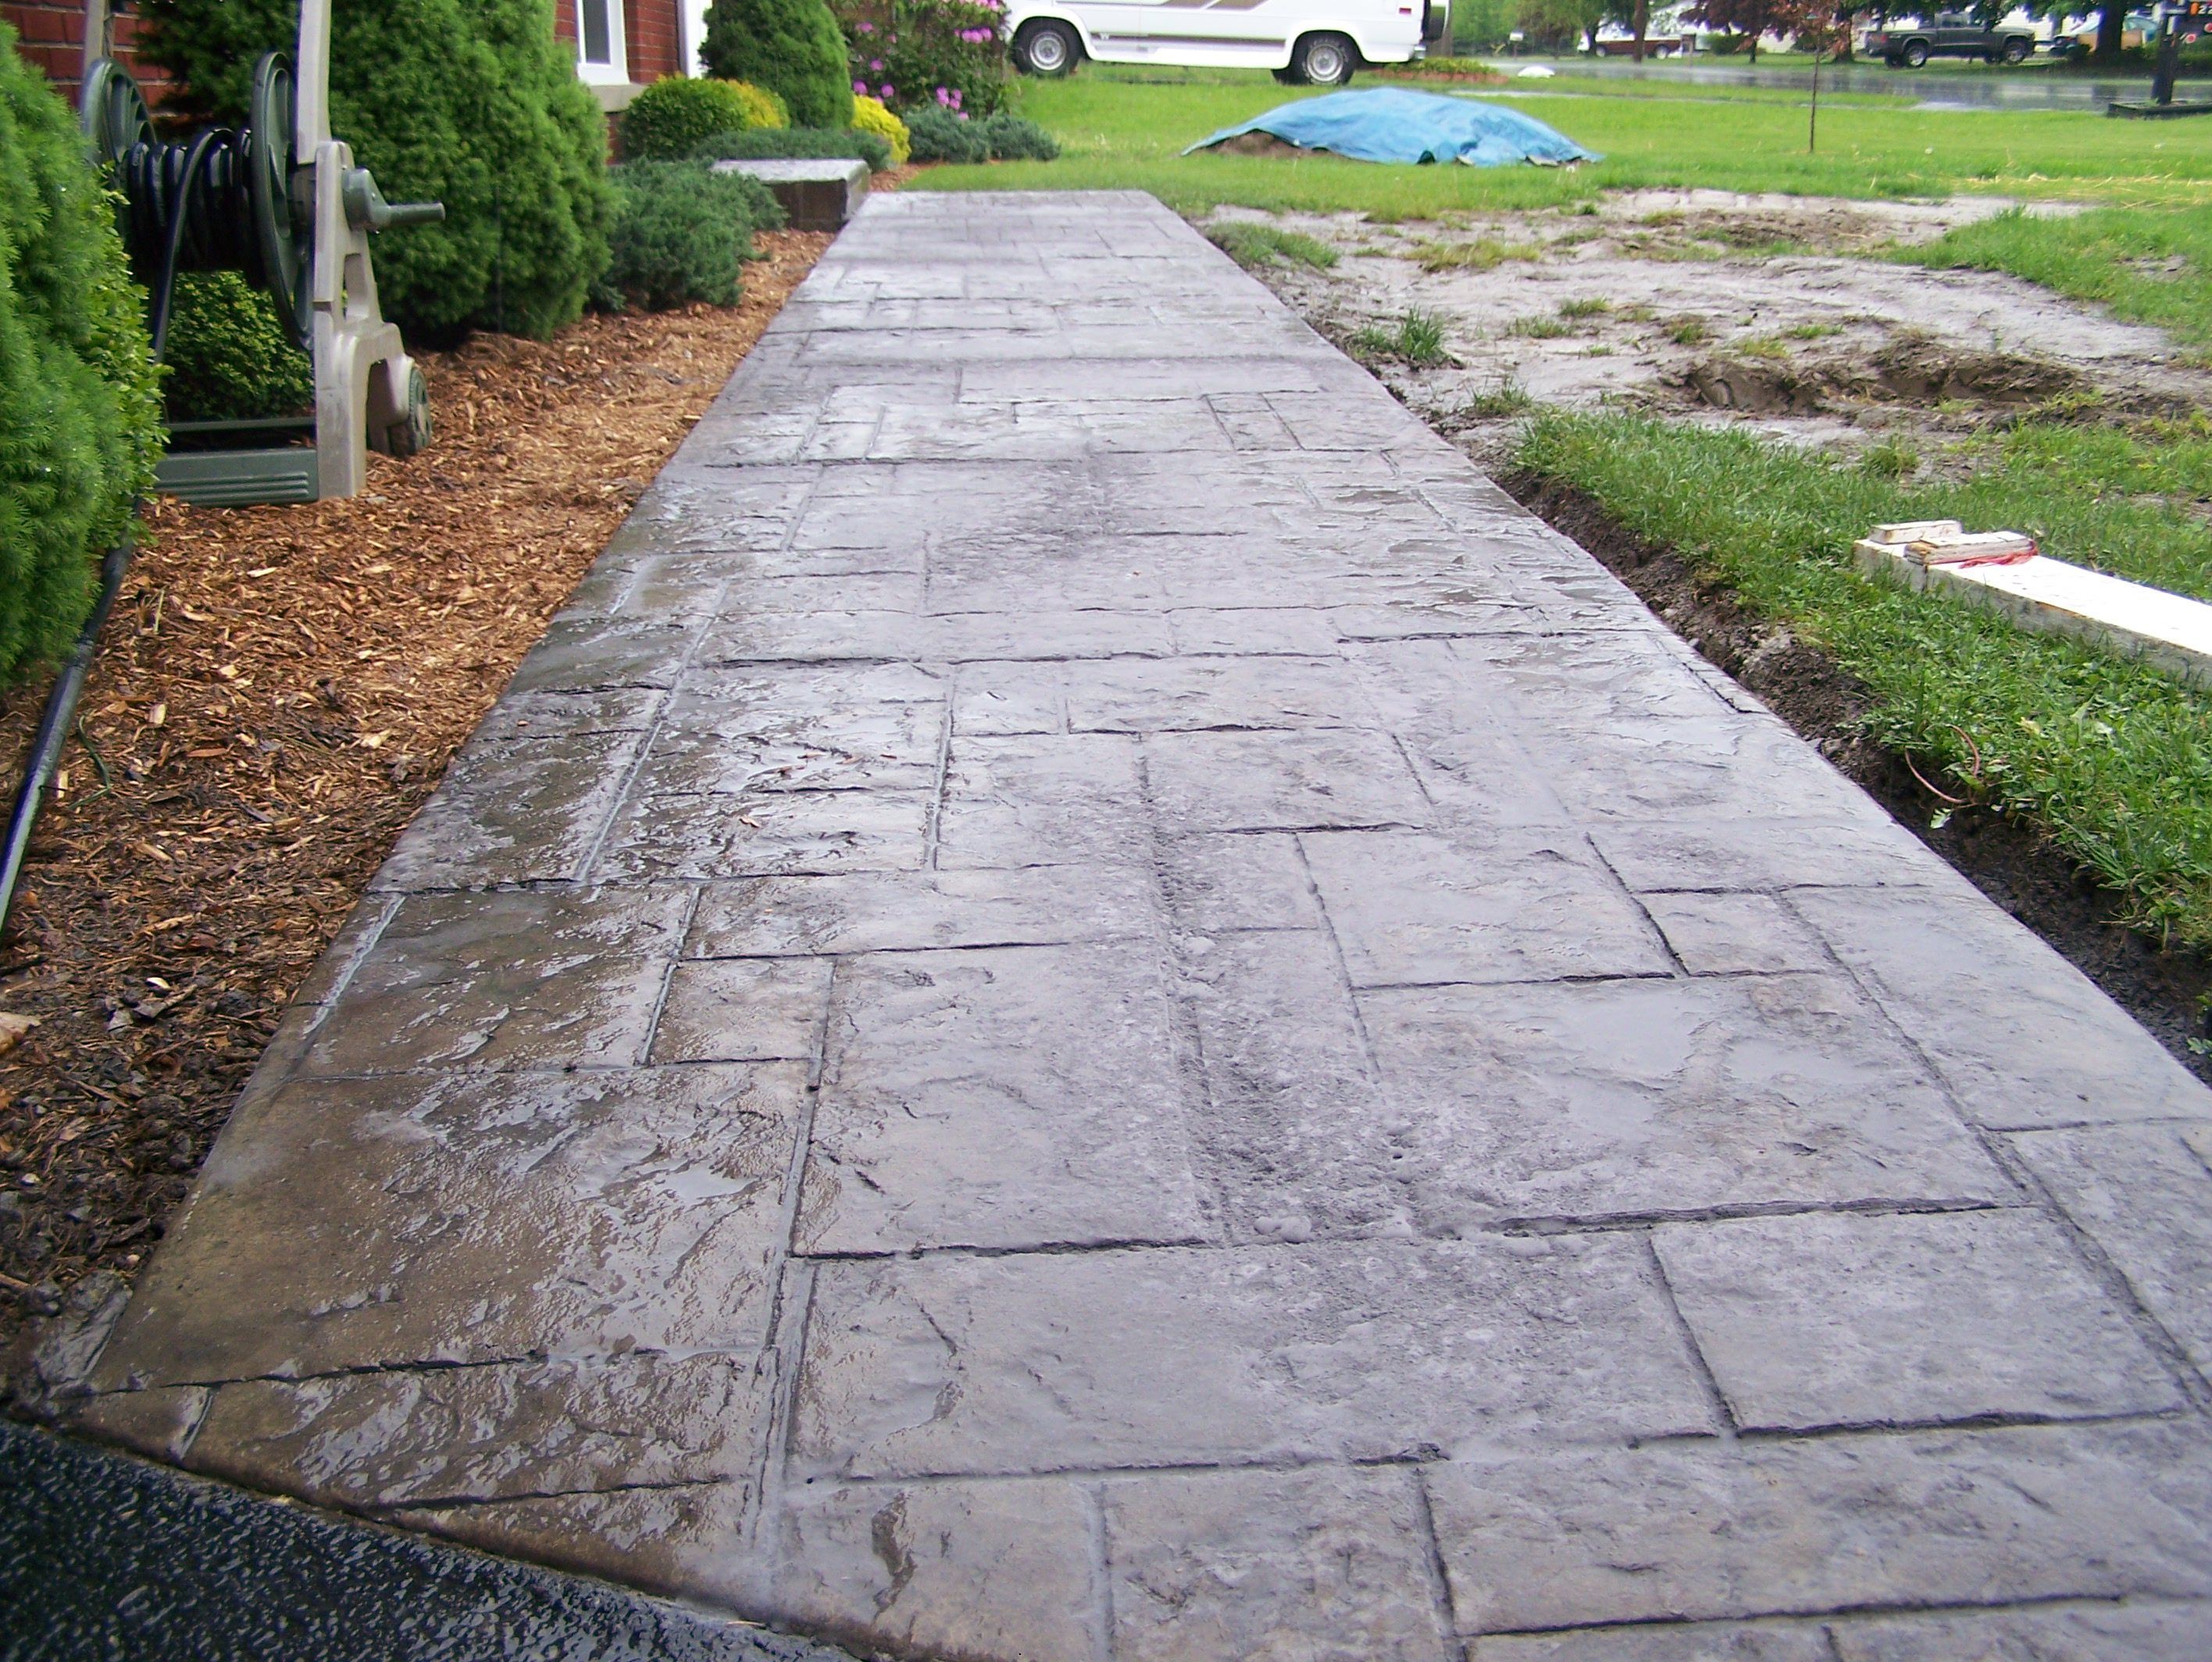 Stamped colored concrete sidewalk concrete pinterest - Stamped concrete walkway ideas ...